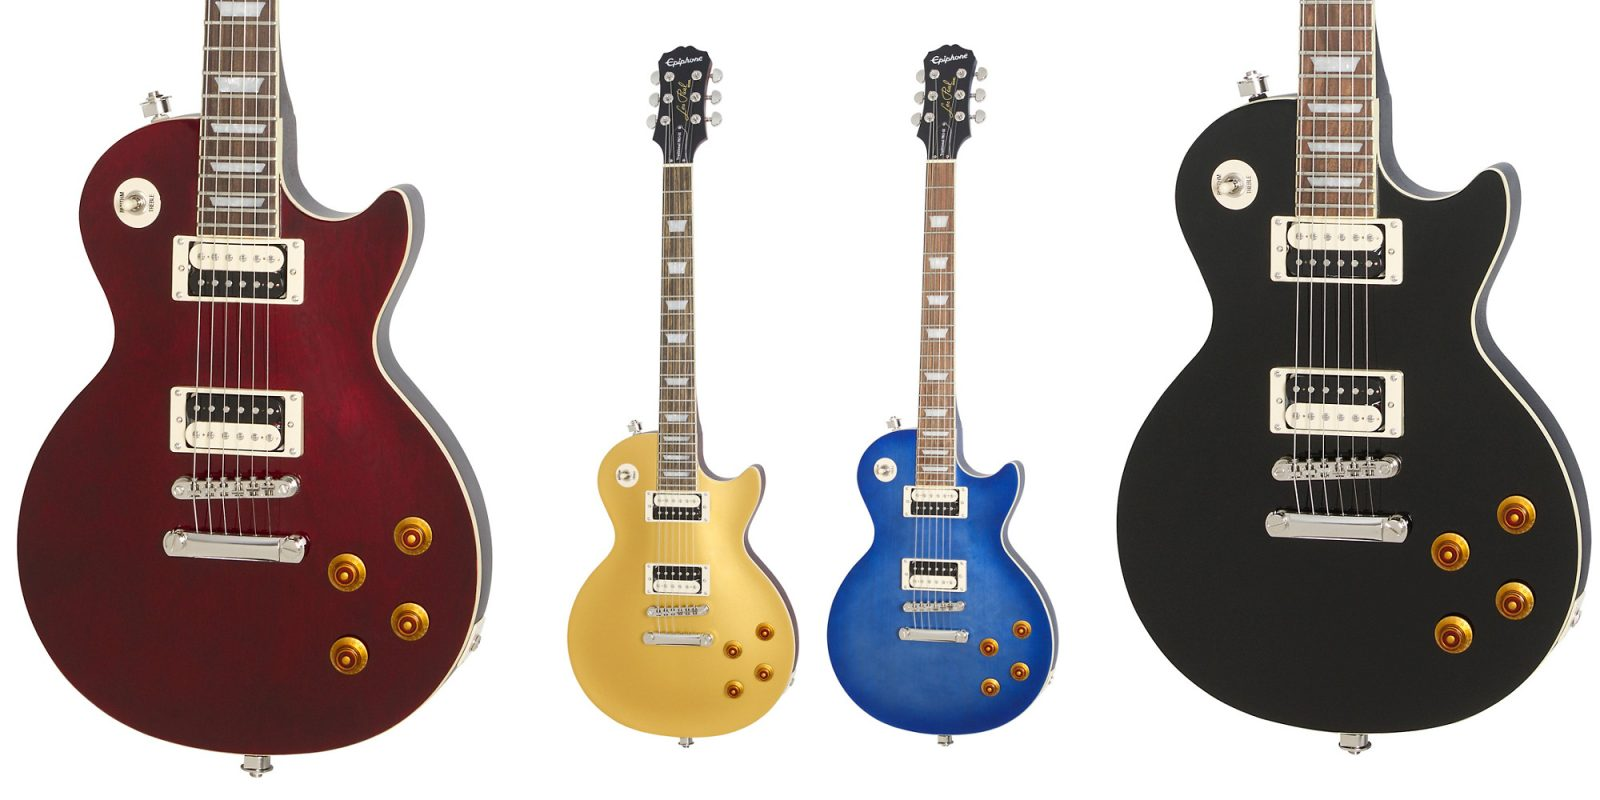 Epiphone's Les Paul PRO-III Electric Guitar is now $100 off with free shipping